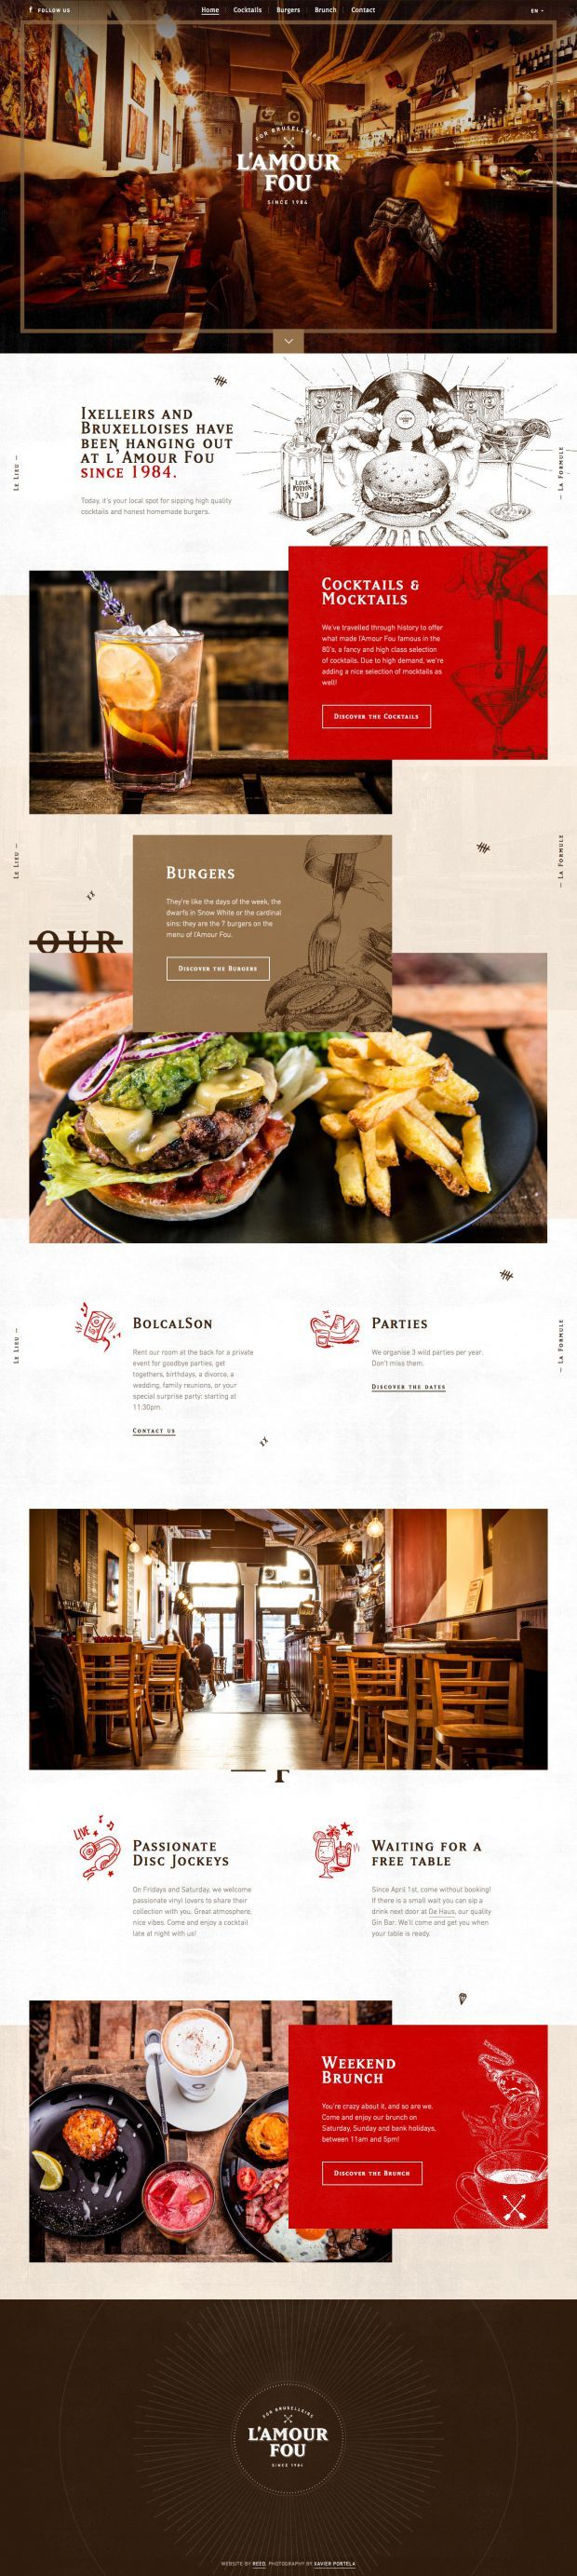 LAmour Fou - Burgers and Cocktails in Brussels www.niceoneilike.com #Inspiration, #Scrolling #Site, #Parallax, #Restaurant, #Website, #Burgers, #Cocktails